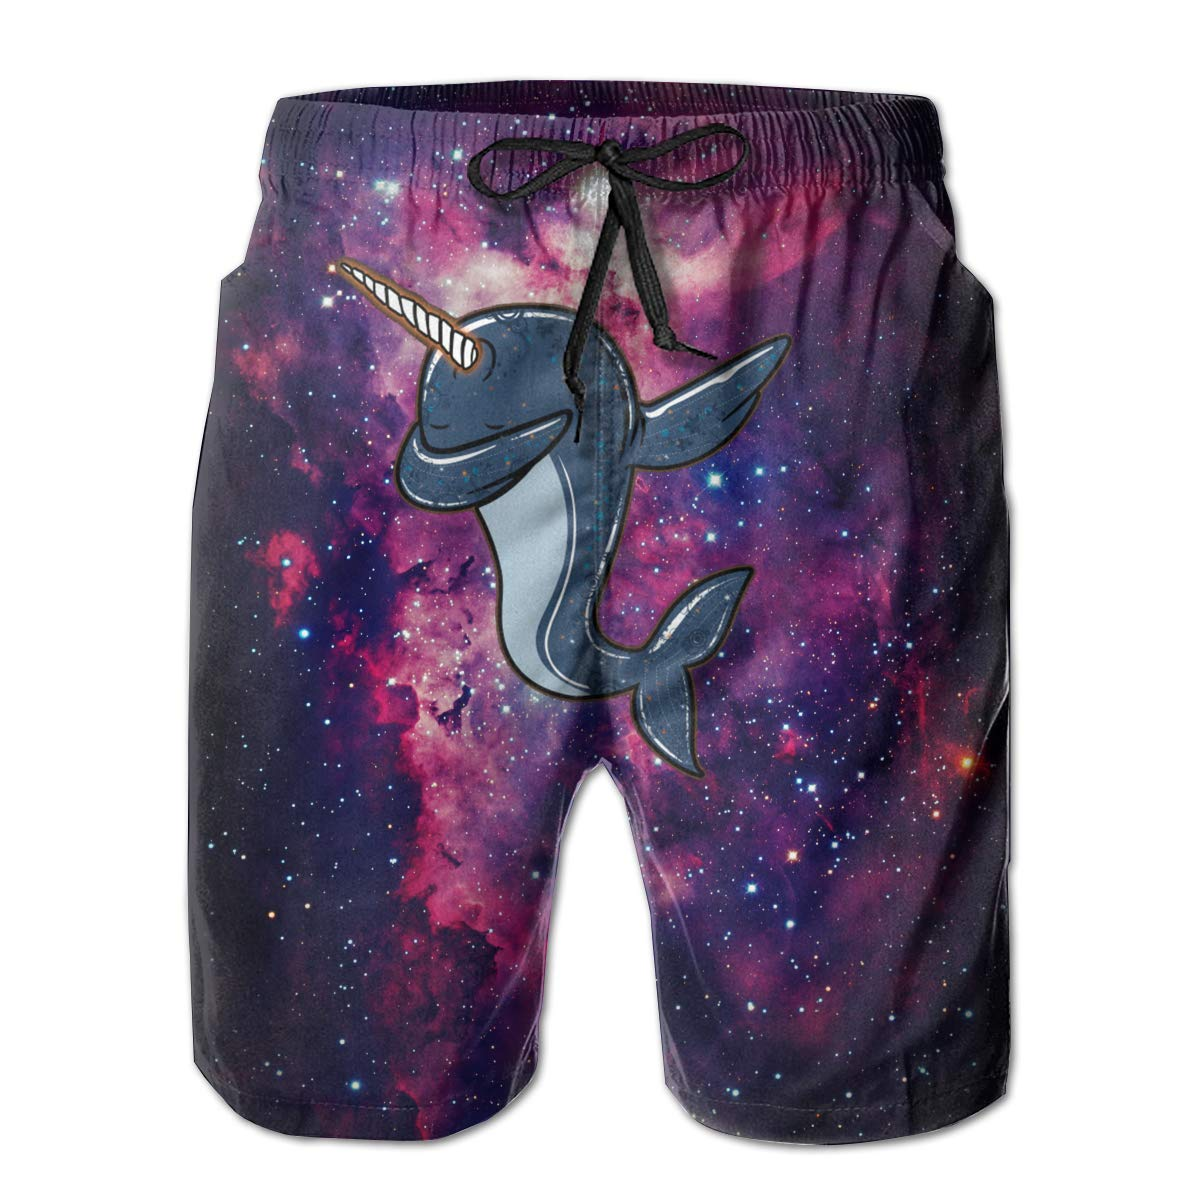 Eofjbg Fashion Mens Dabbing Narwhal Beach Shorts Board Shorts Casual Shorts Swim Trunks